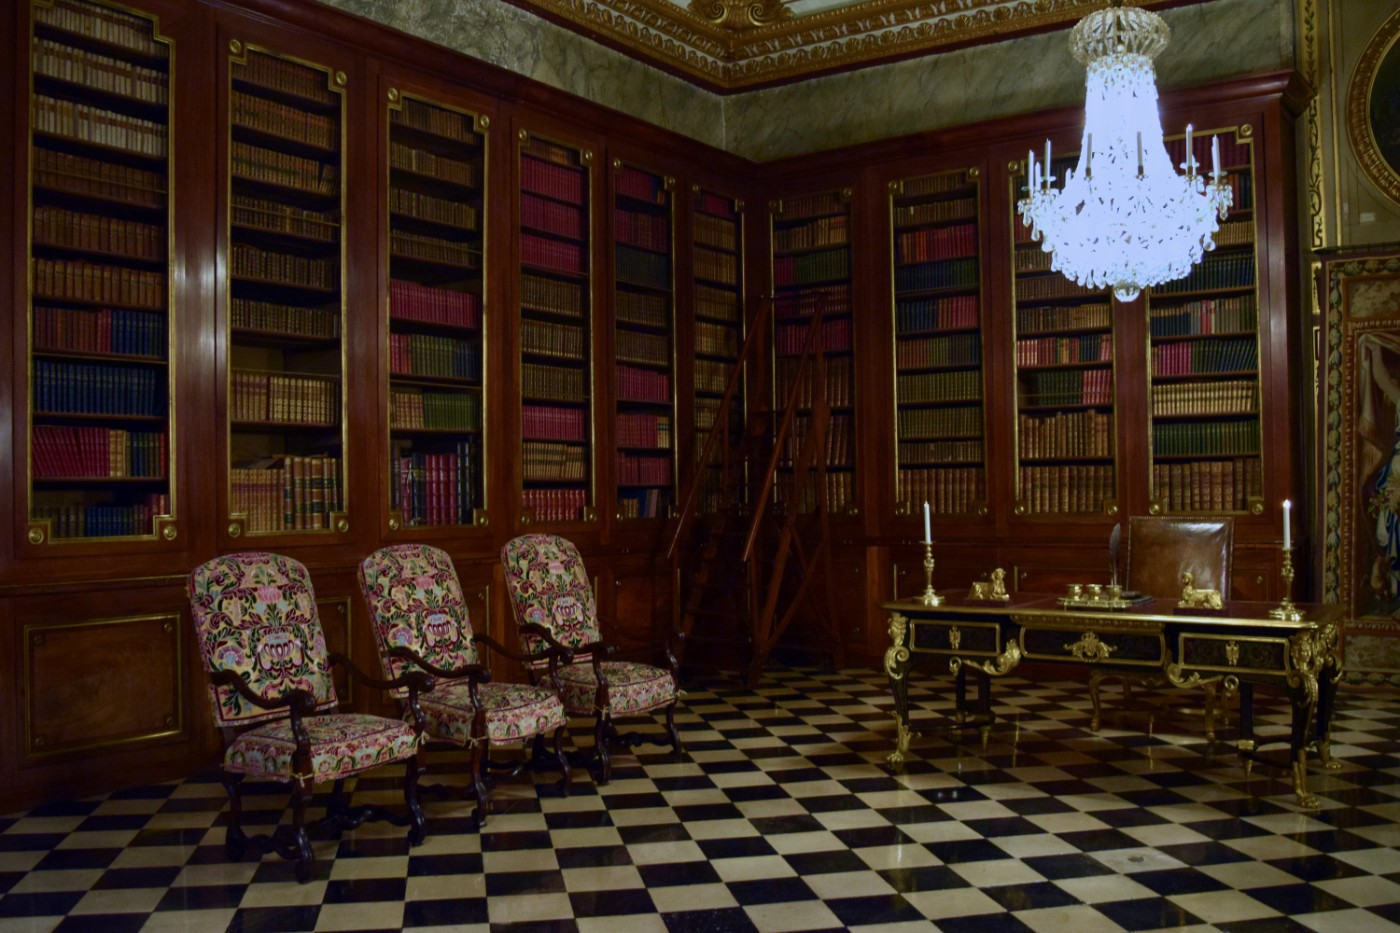 The library in the Château de Vaux-le-Vicomte, complete with a black-and-white checkered floor.